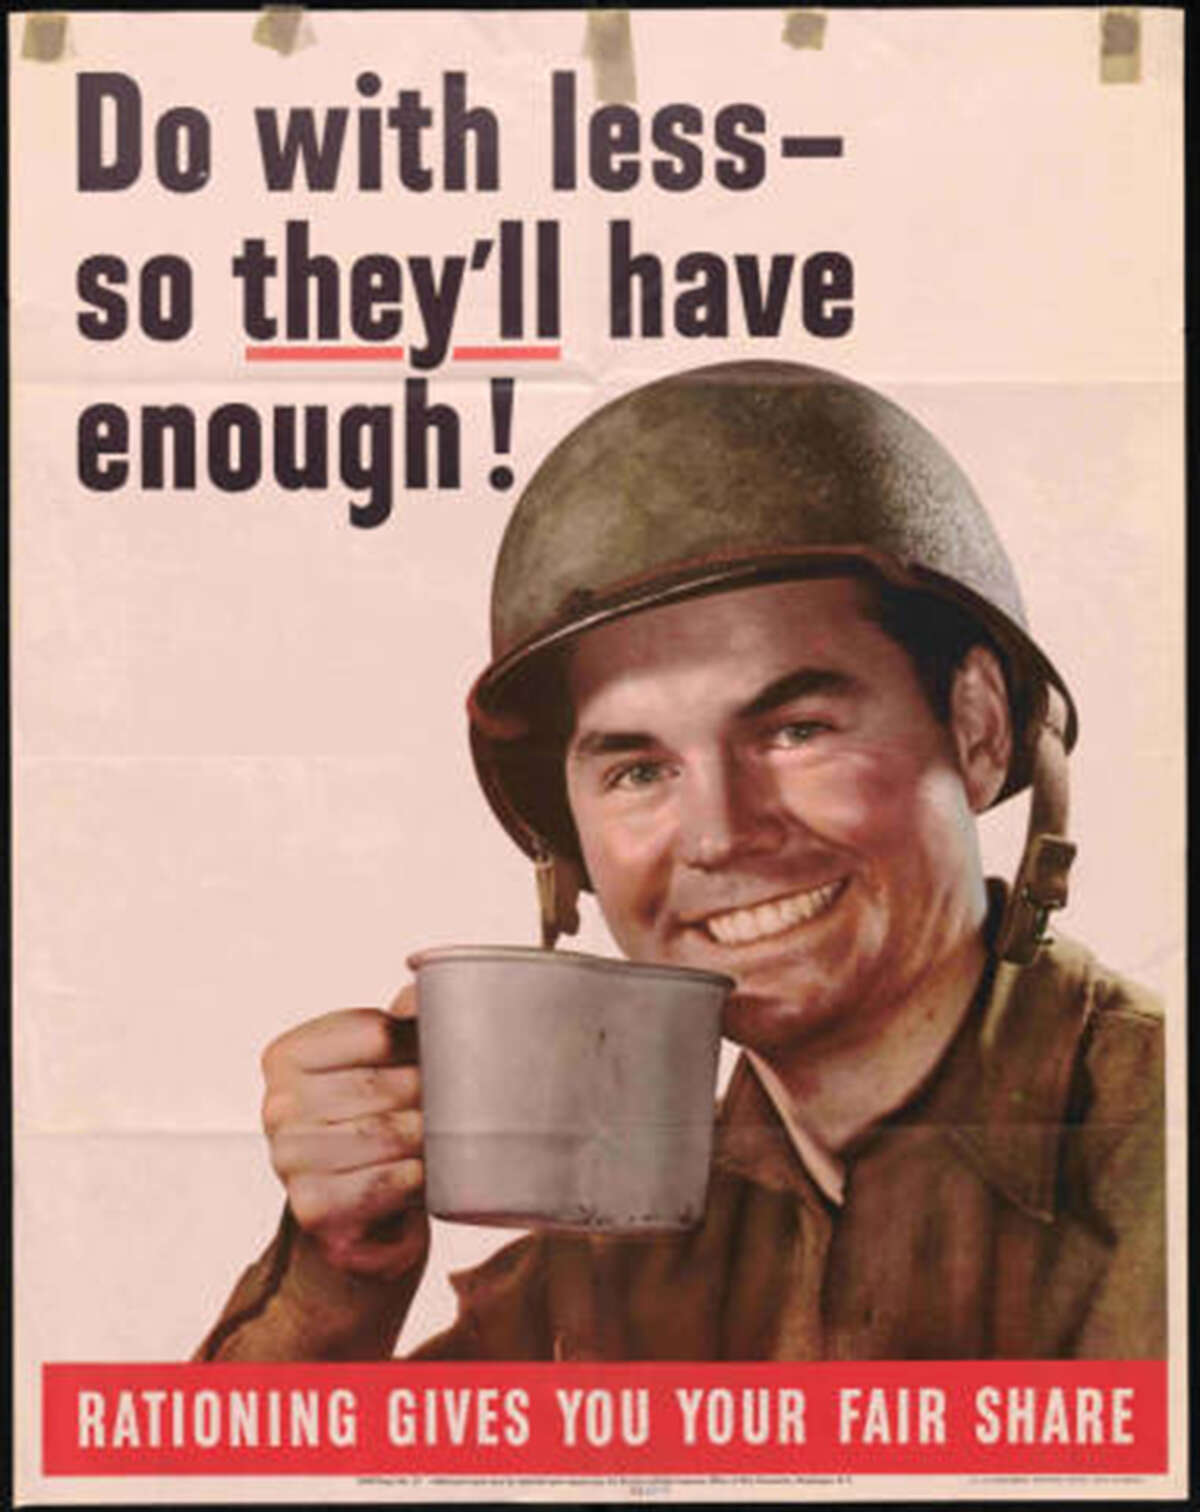 The U.S. Office of War Information created this poster in 1943 to encourage American citizens to conserve their personal resources so that troops overseas would have enough.